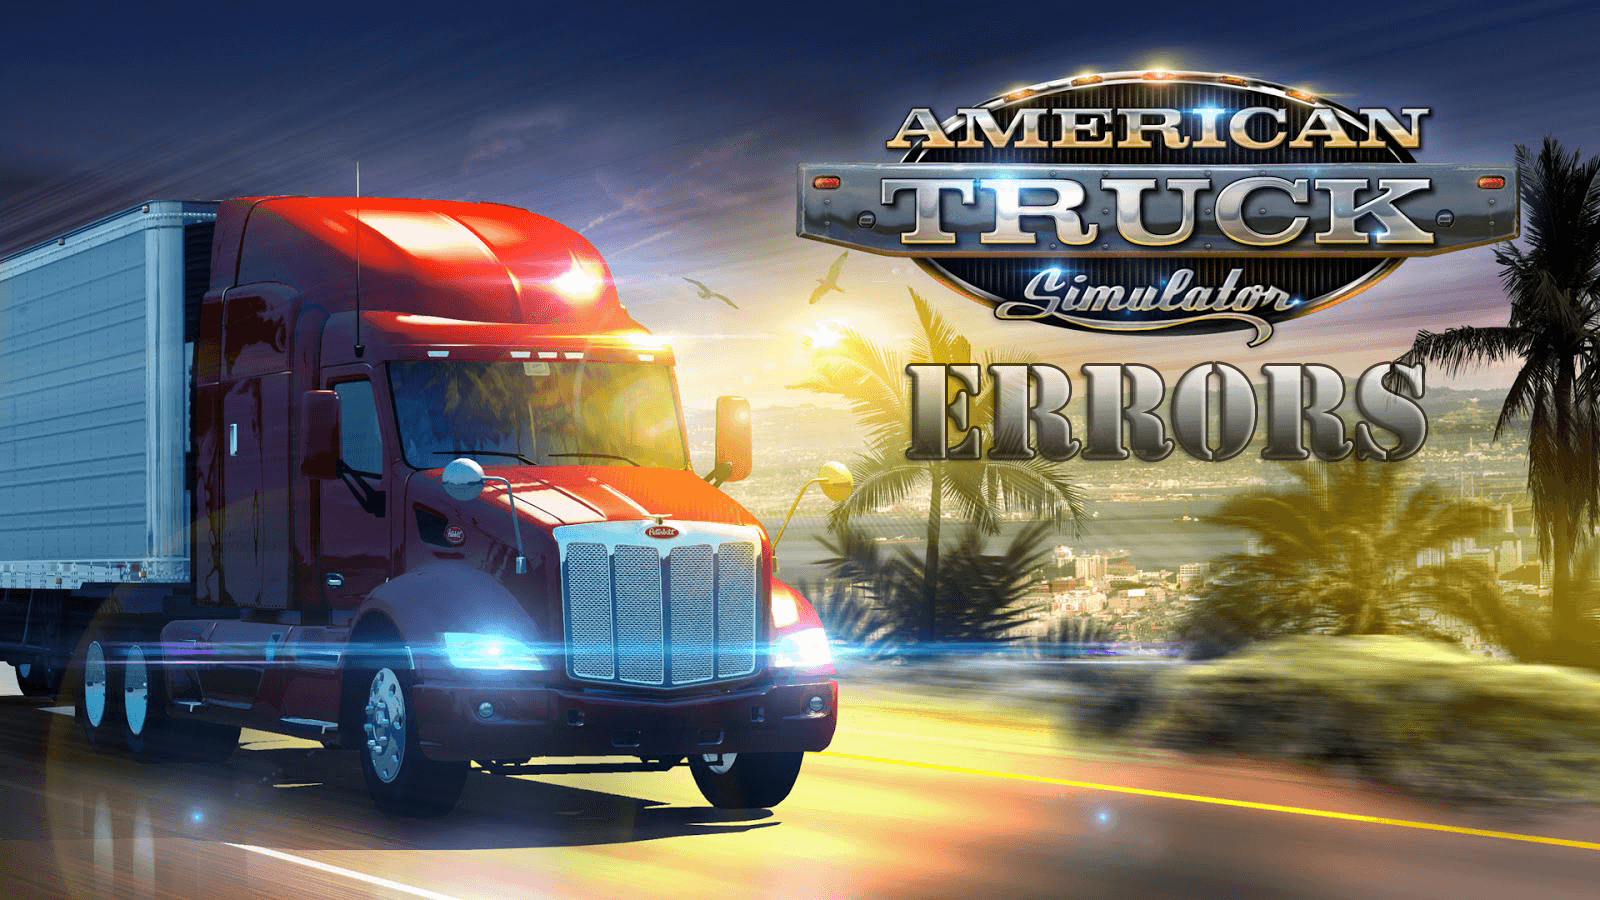 How to Fix American Truck Simulator Errors, Crashes, Not